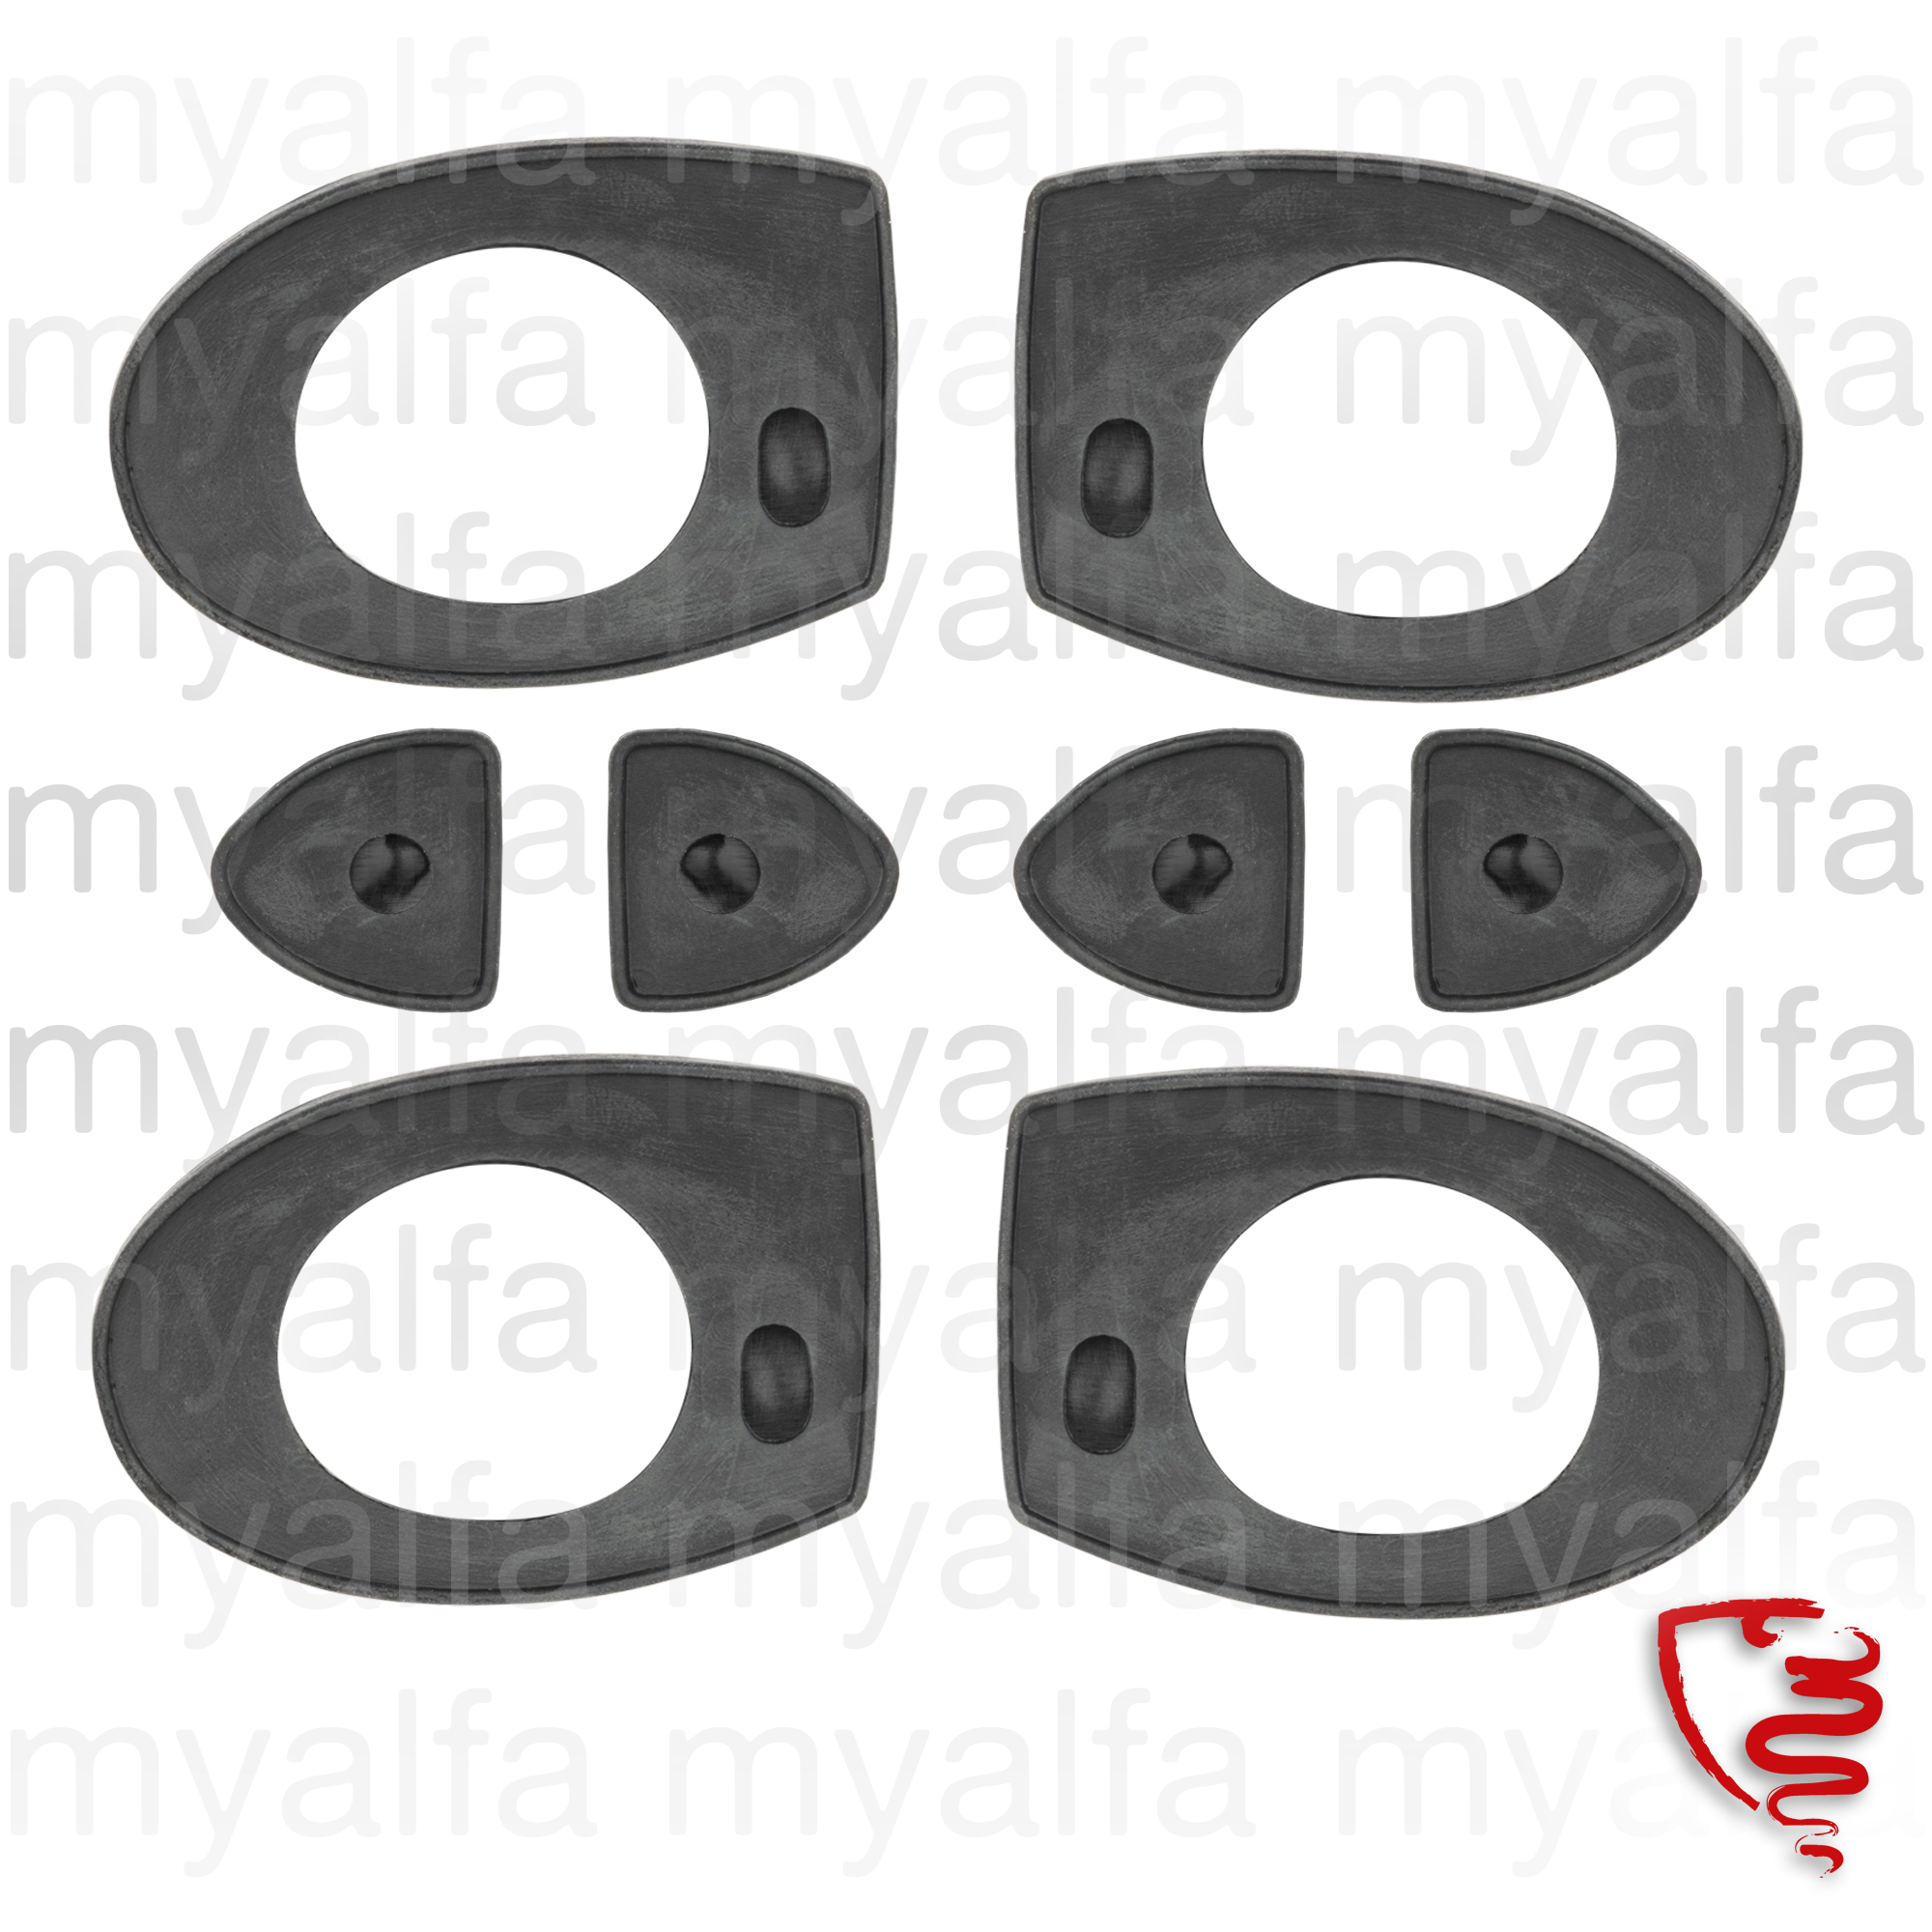 Jg. rubber handles doors Giulia 1969-77 for 105/115, Giulia, Body parts, Chrome Parts, Door, Rubber parts, Door grommets/felt/seals